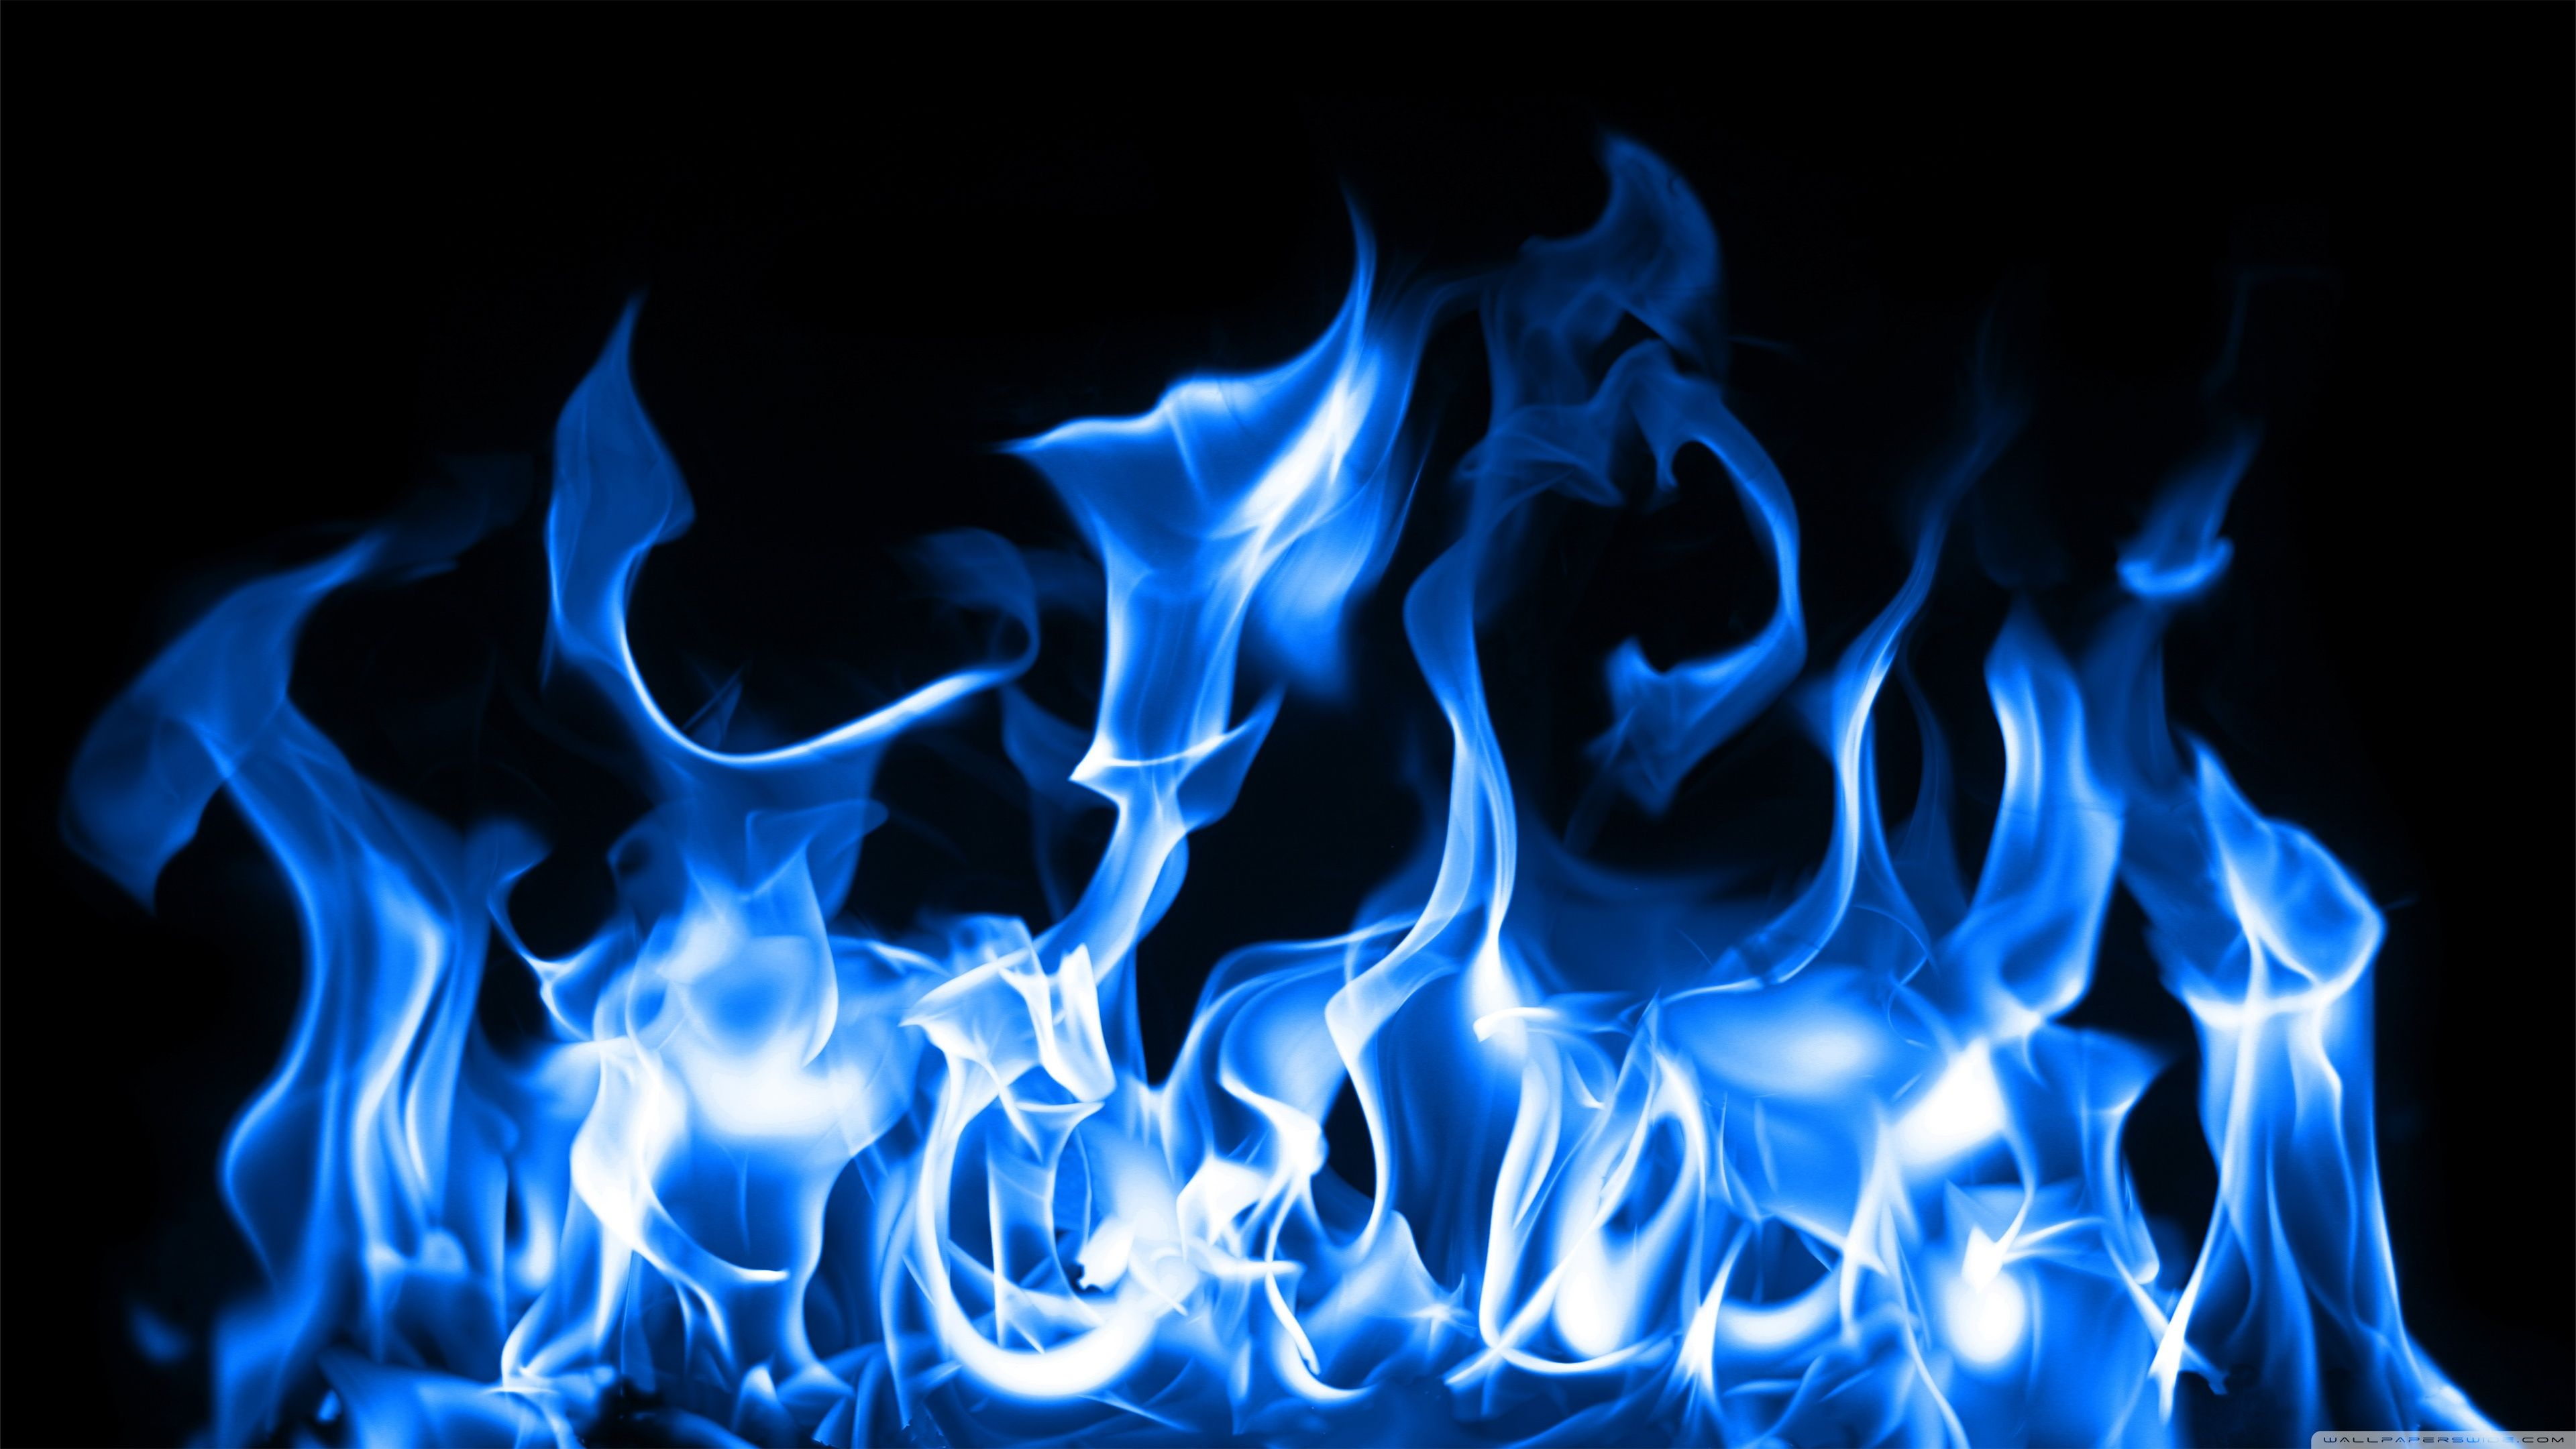 4k Fire Wallpapers Top Free 4k Fire Backgrounds